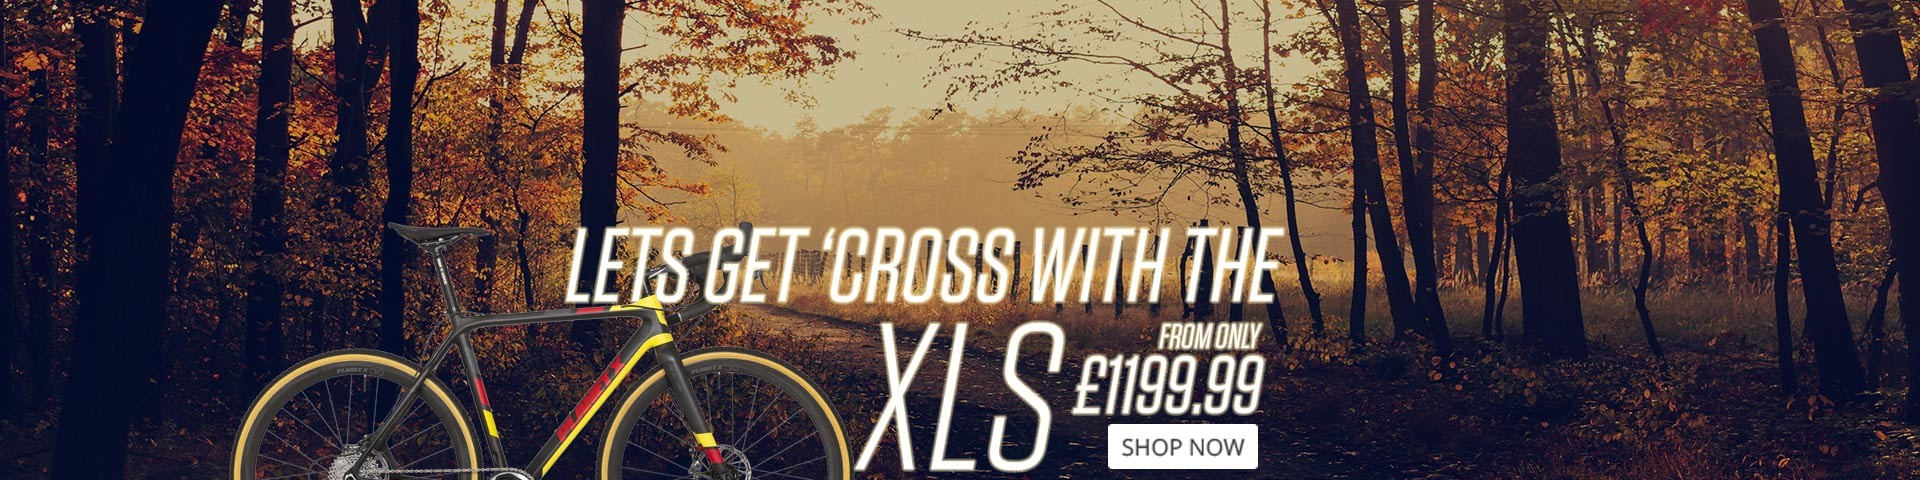 Let's Get 'Cross with the XLS